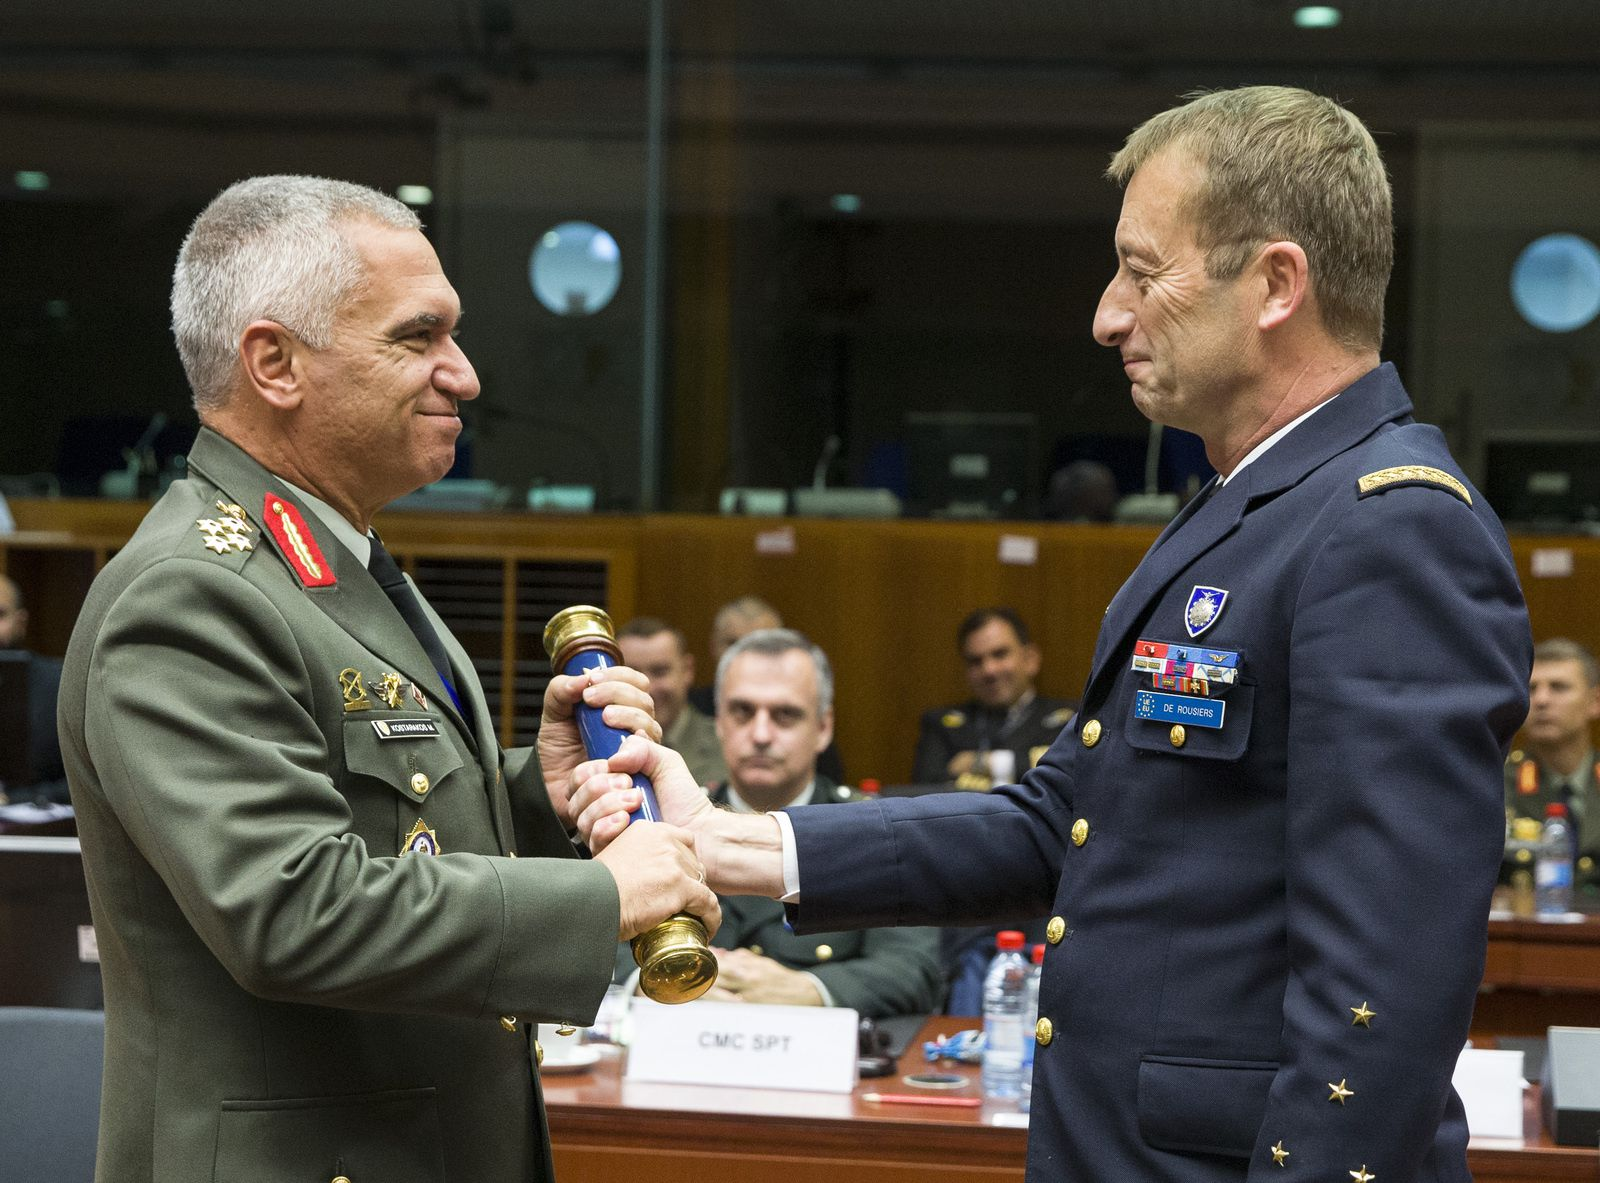 Transfer of Authority between General de Rousiers and General Kostarakos - photo EUMC